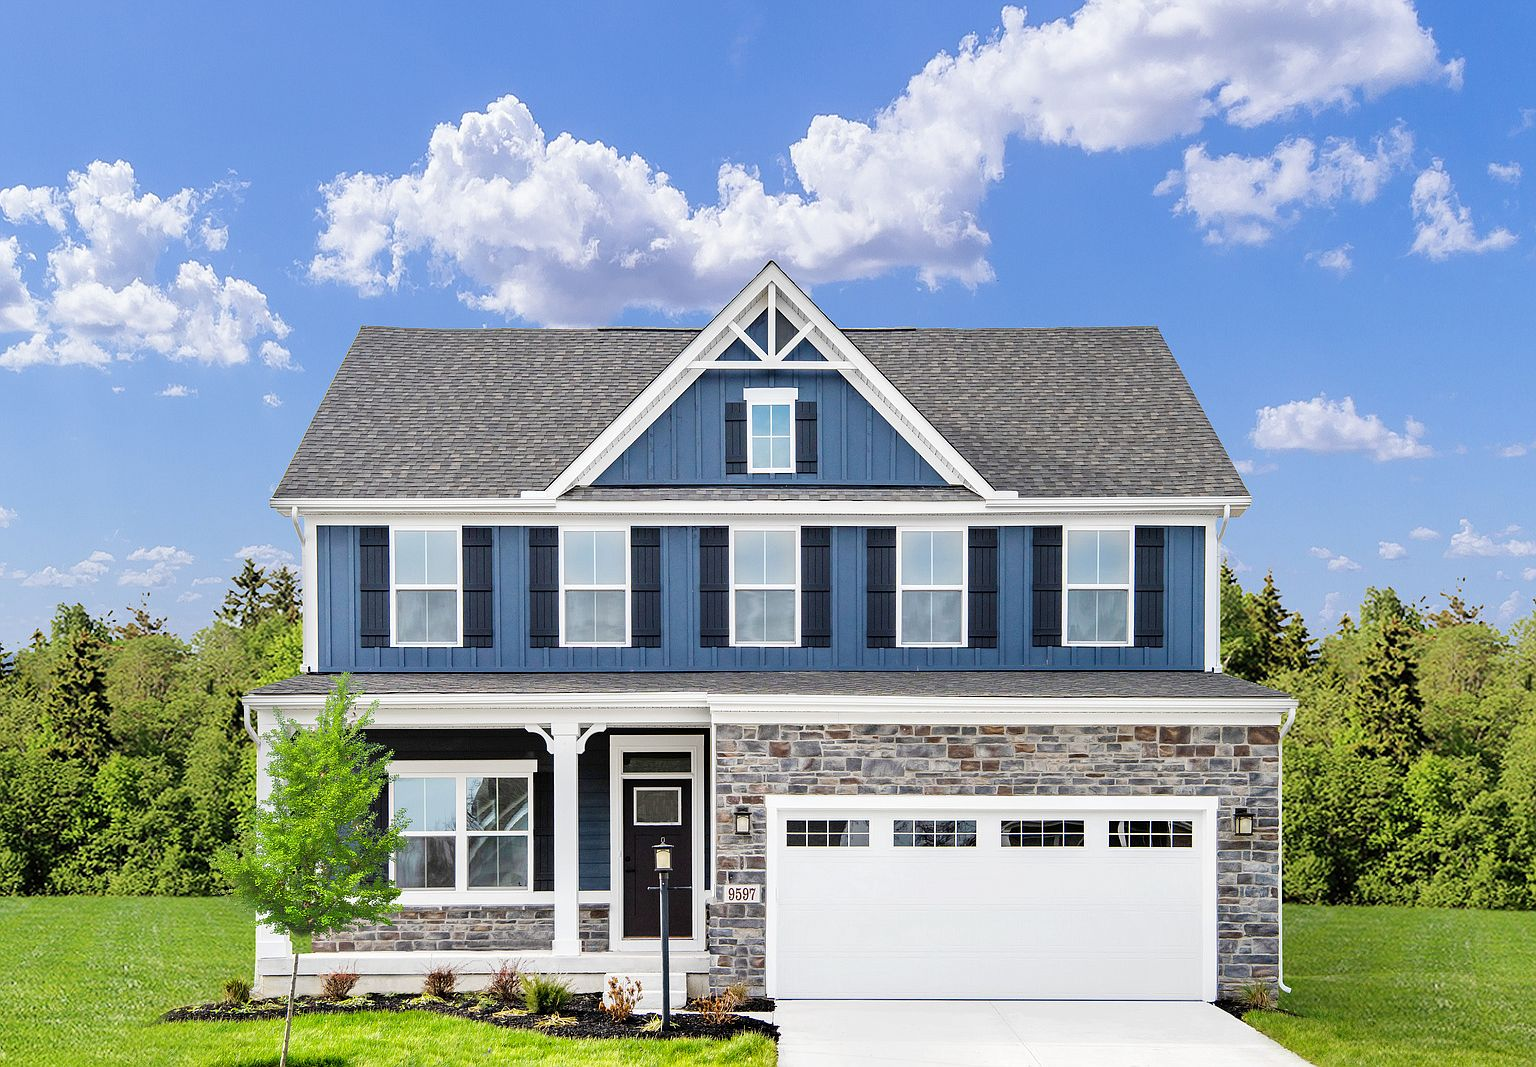 Towne lake homes for sale